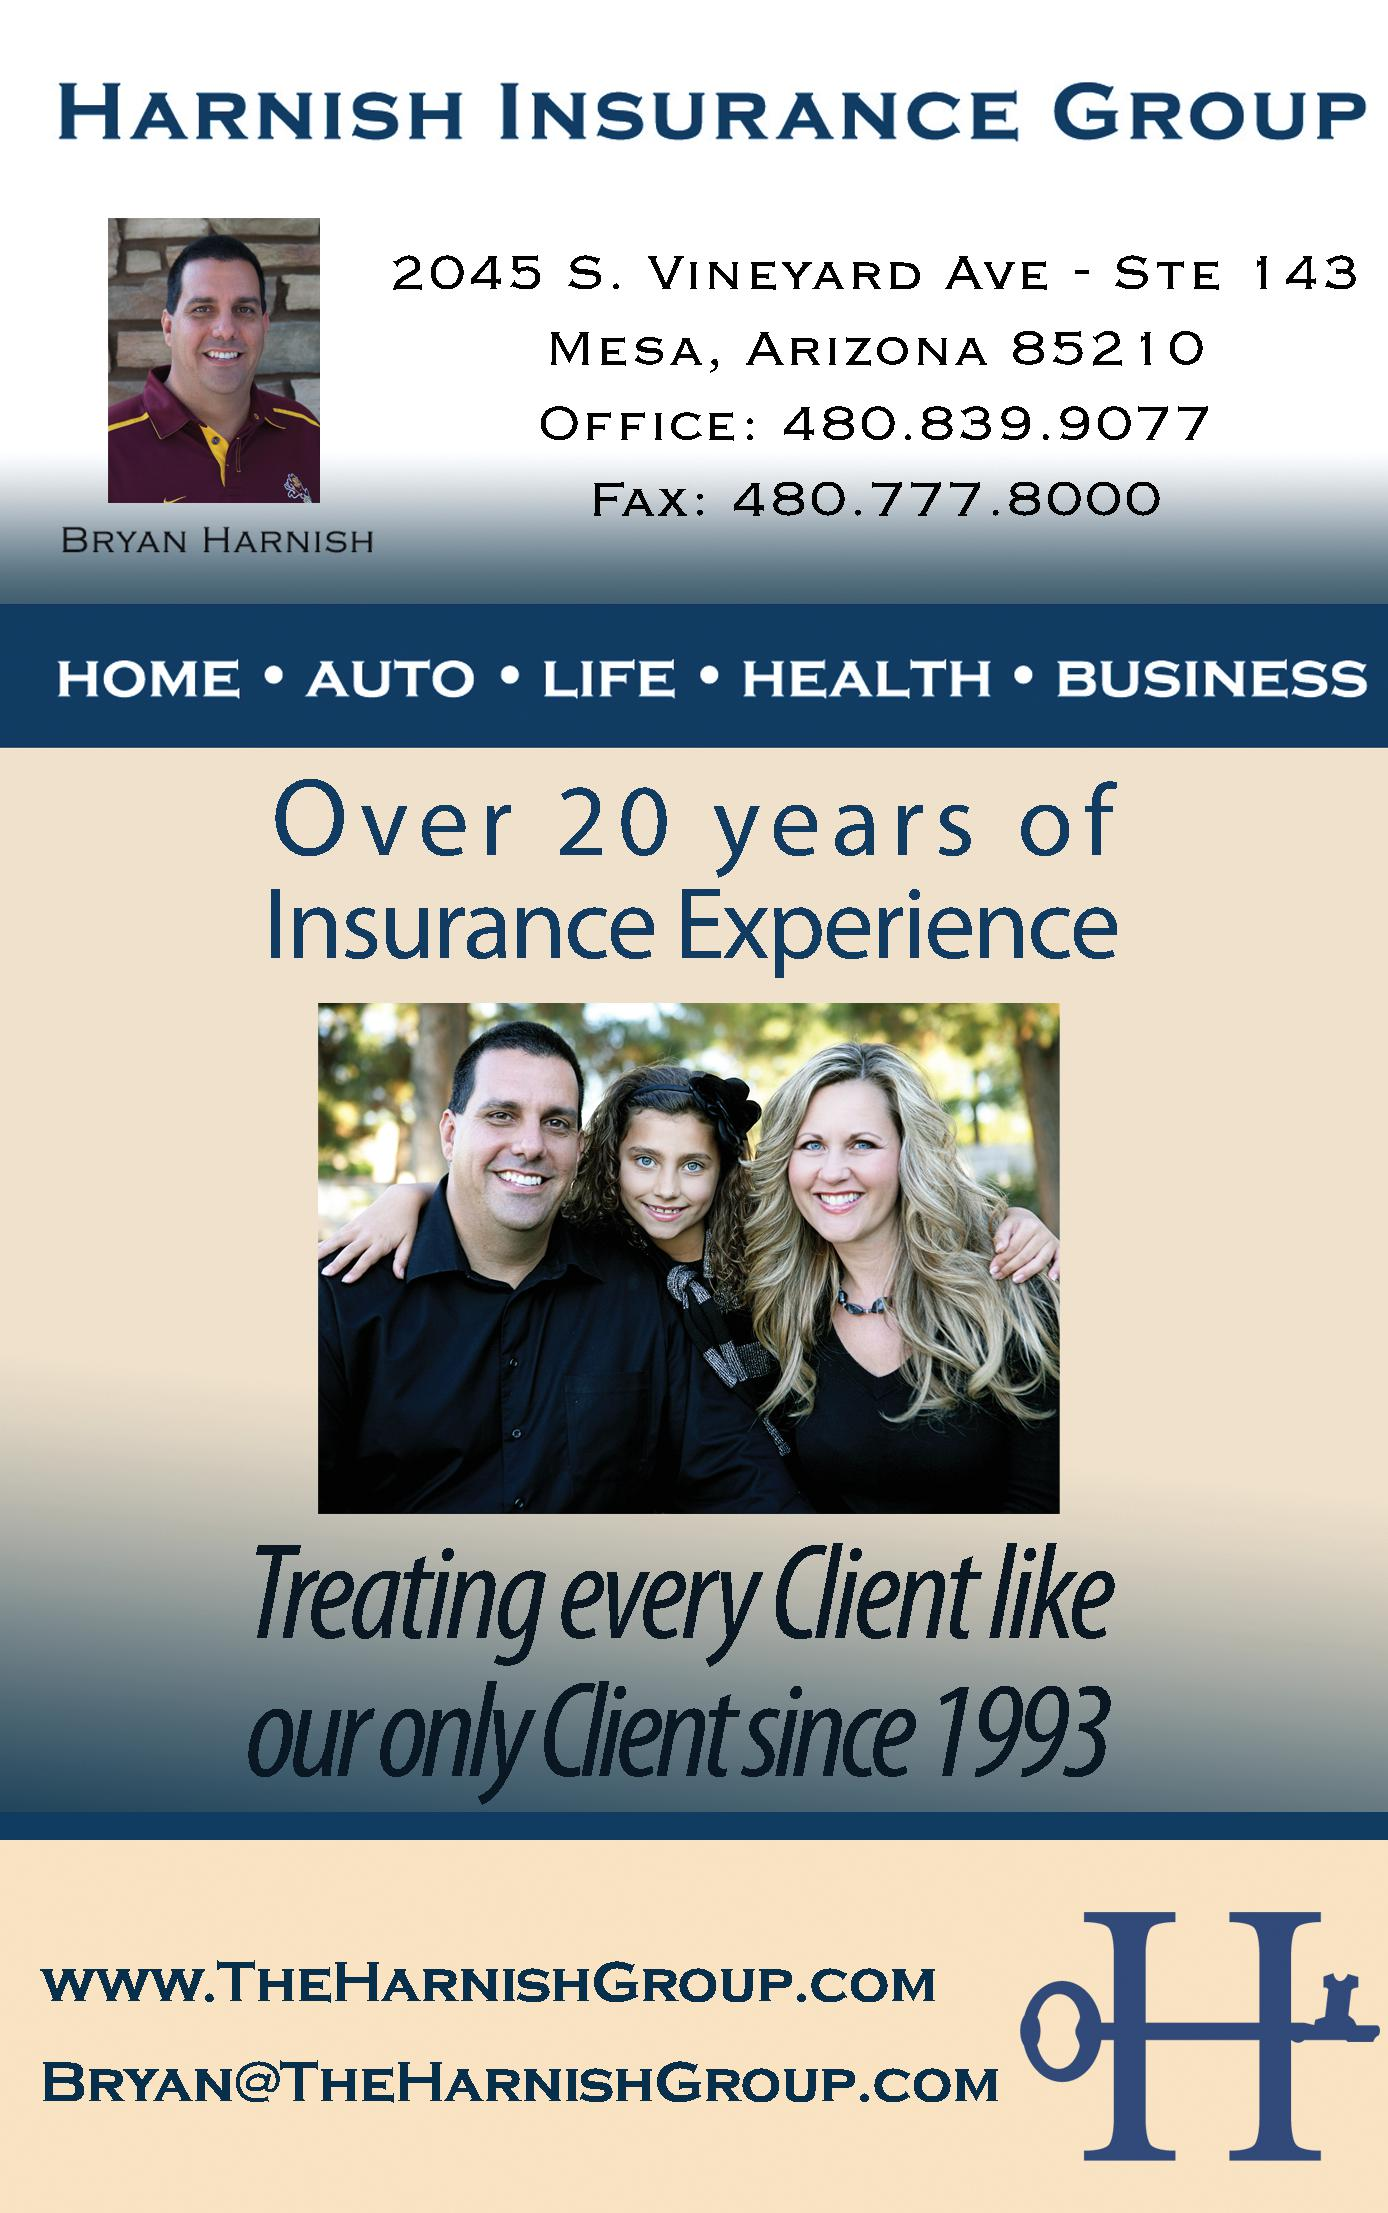 Harnish Insurance Group